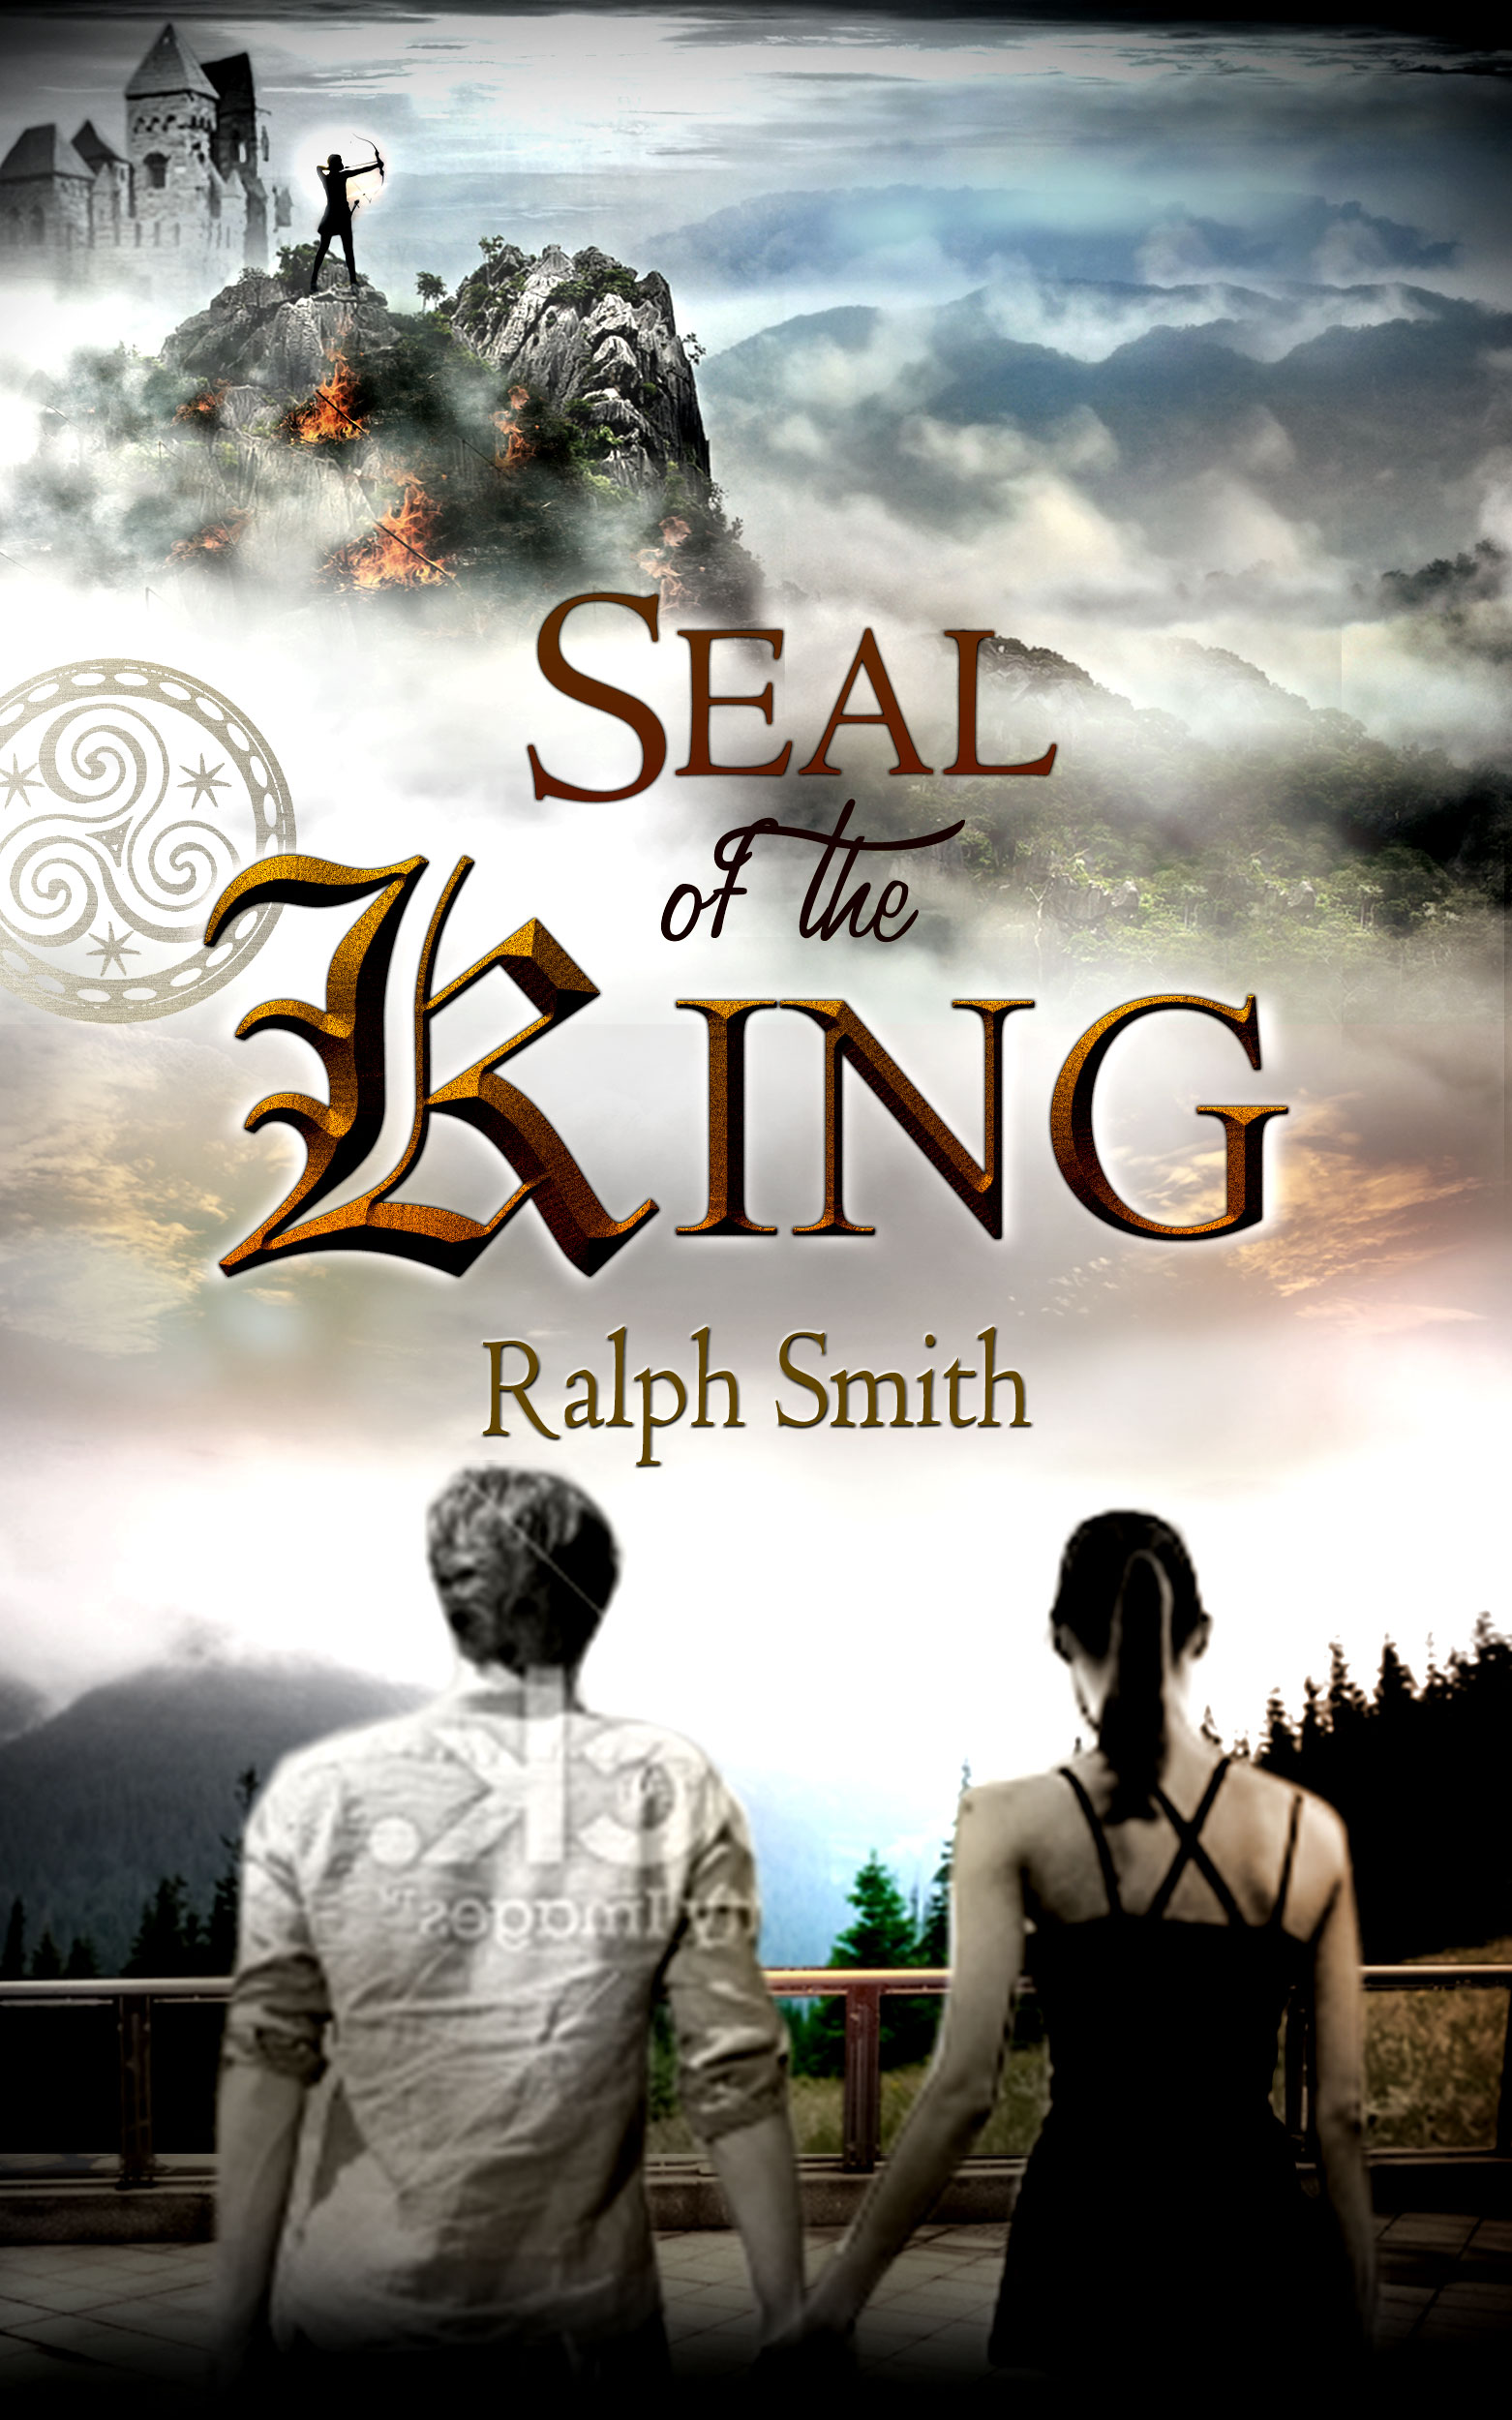 5.0 out of 5 stars Seal of the King: A Fantasy novel